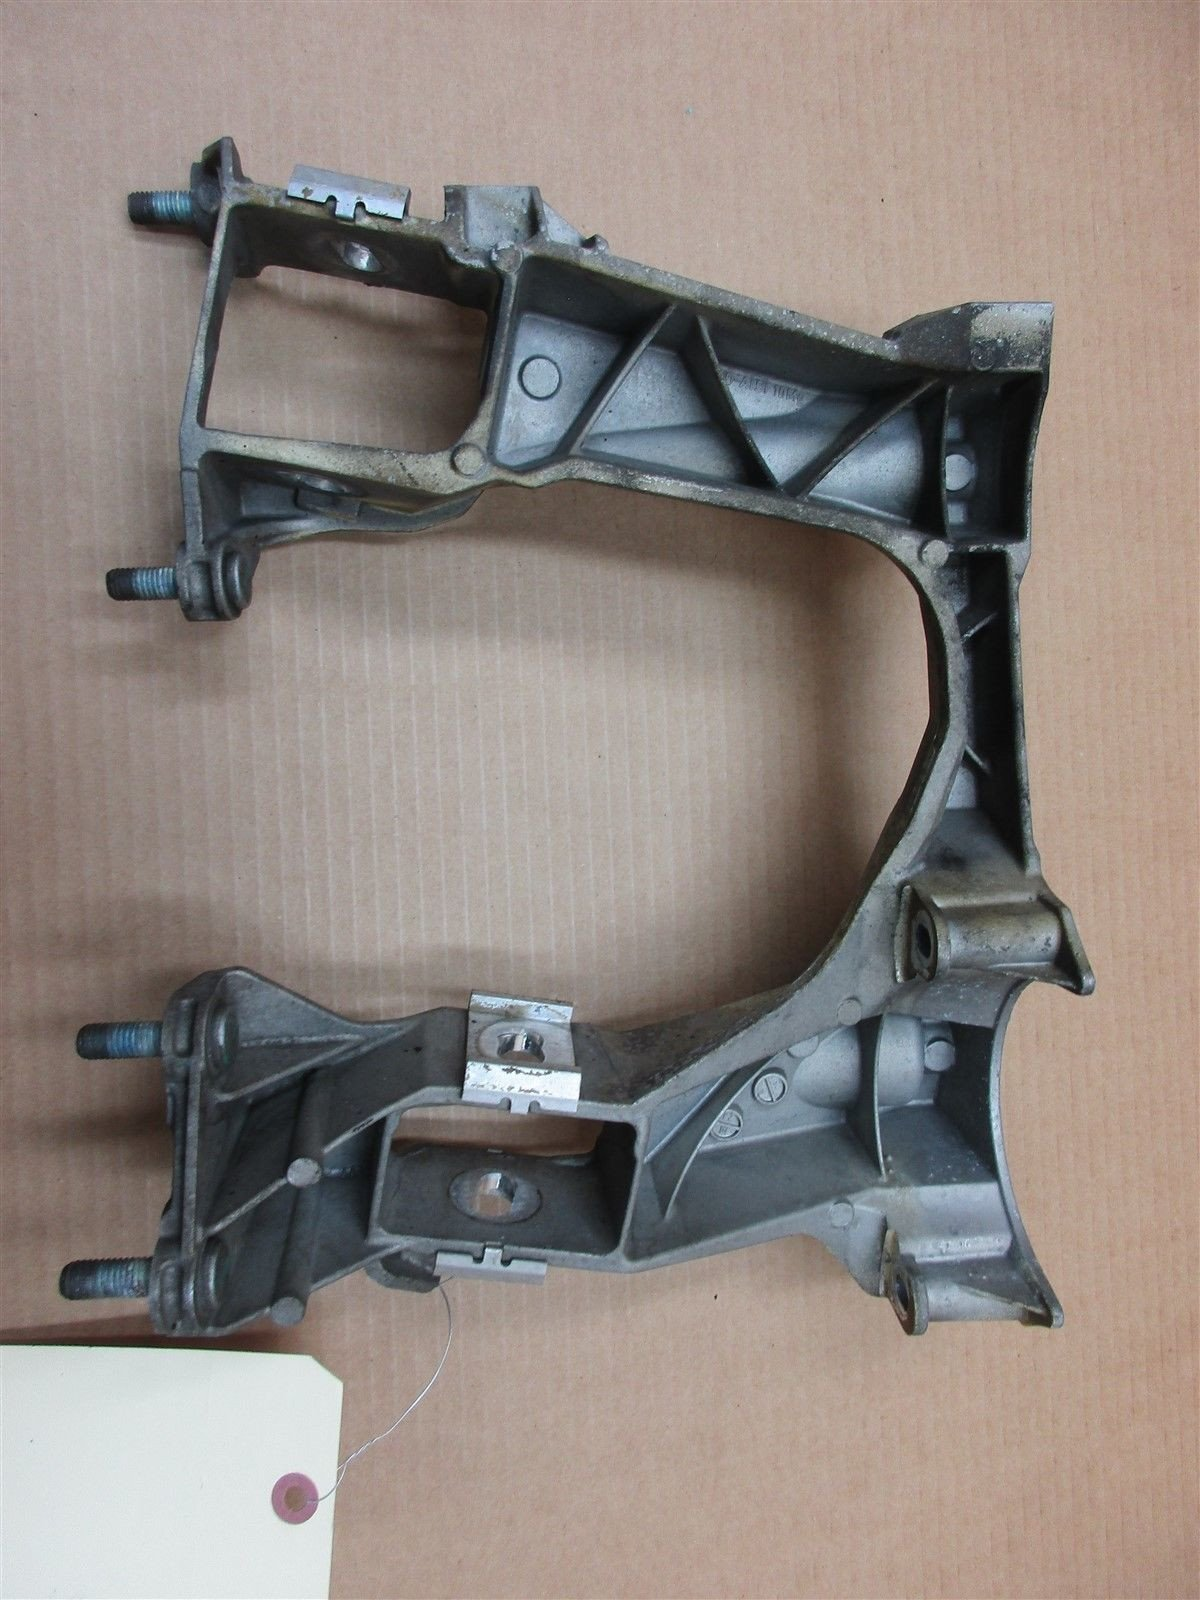 07 Cayman S RWD Porsche 987 R RIGHT REAR SUBFRAME BRACKET 98733115204 72,406